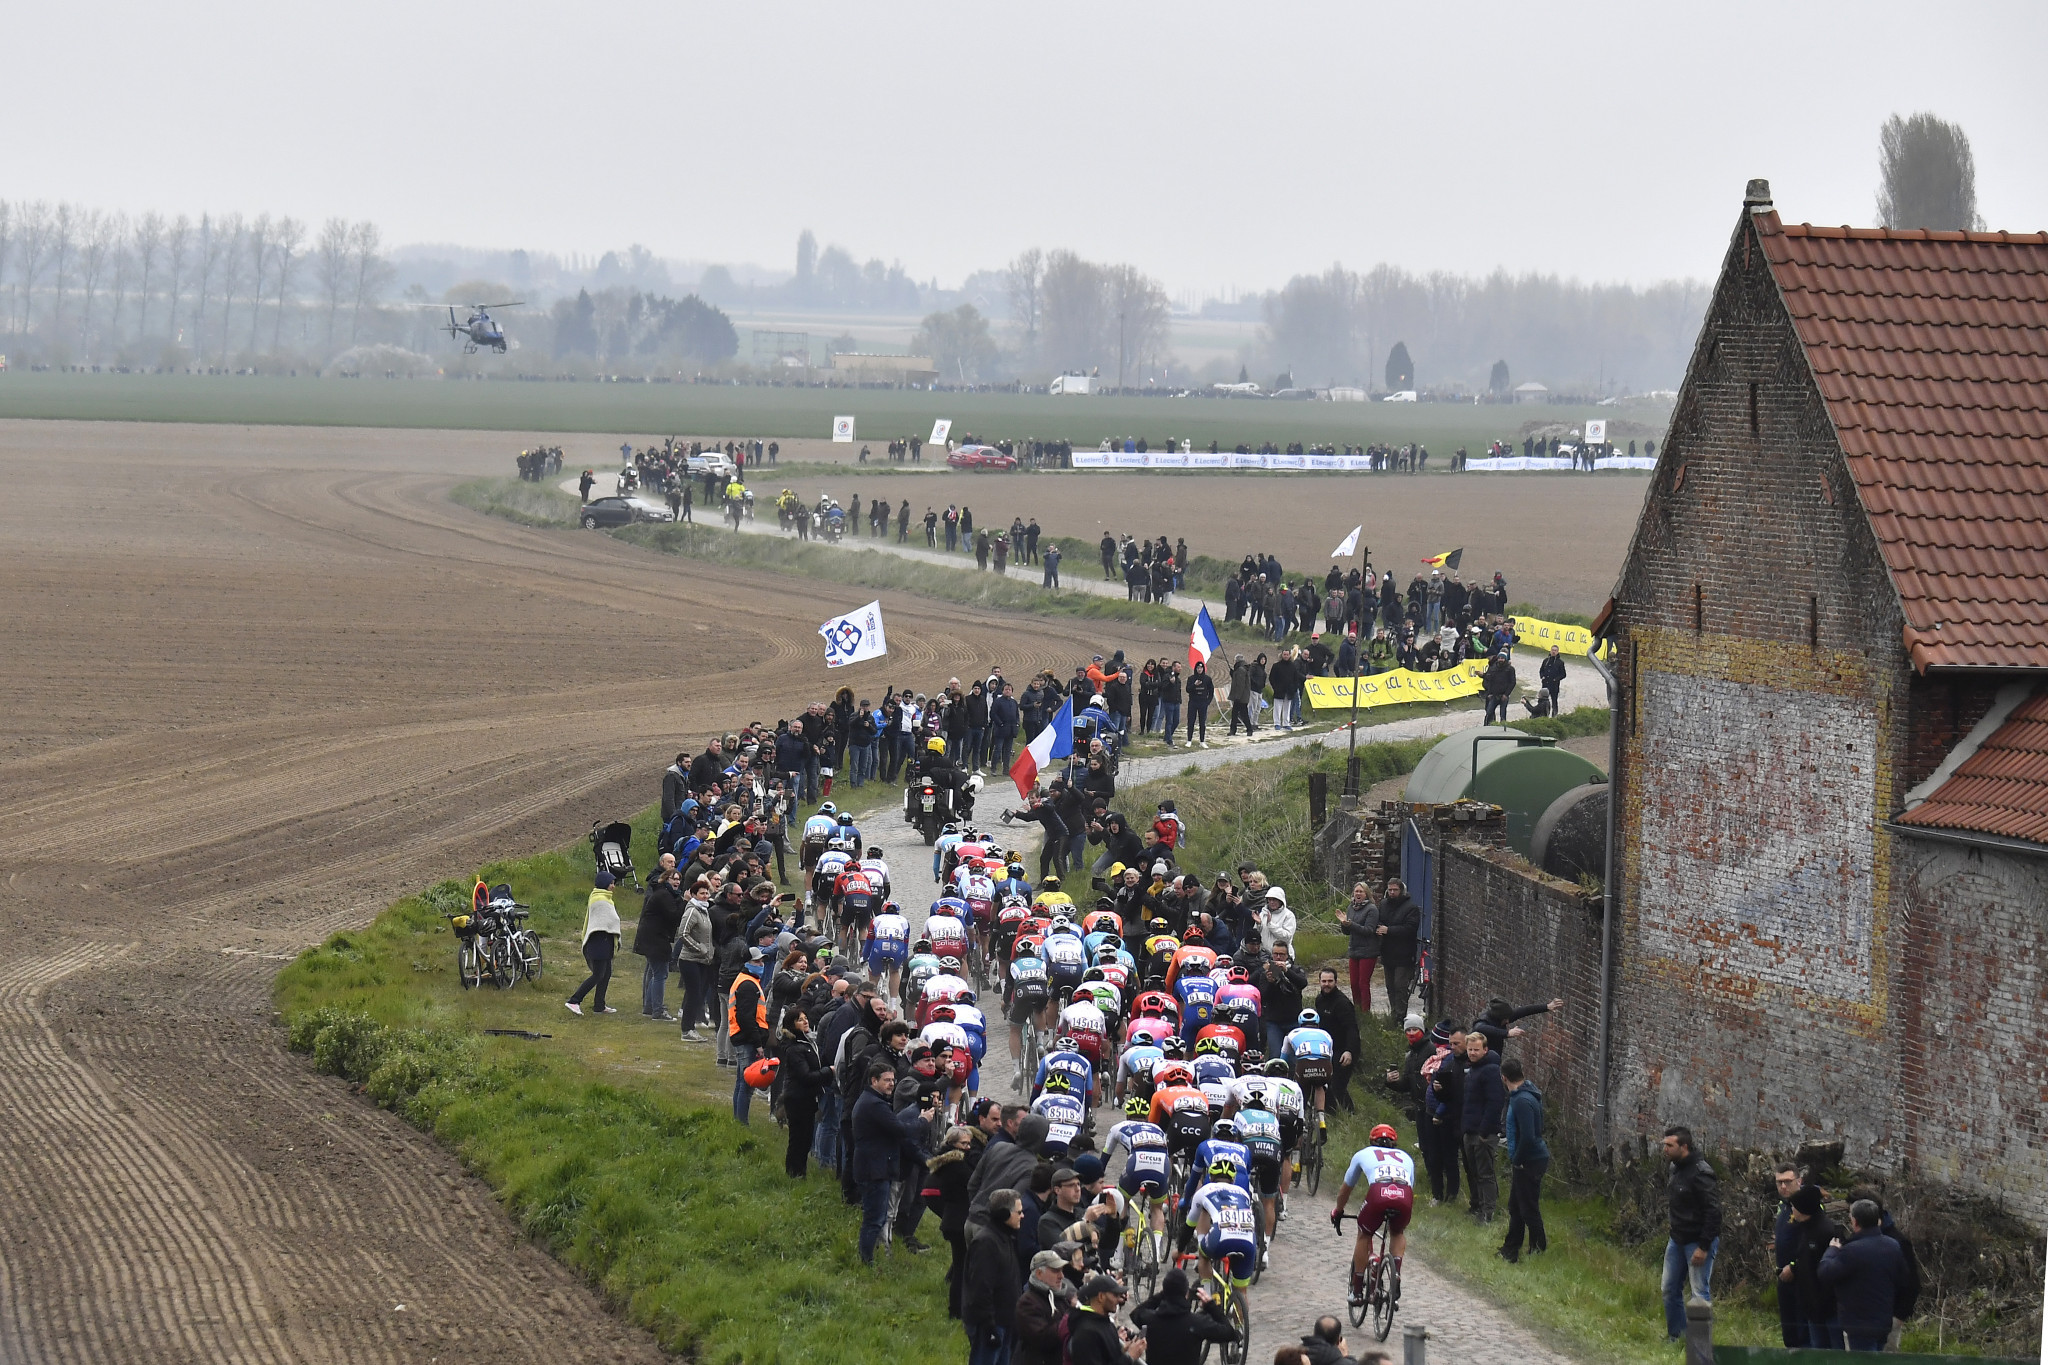 A women's Paris-Roubaix will be held for the first time ©Getty Images